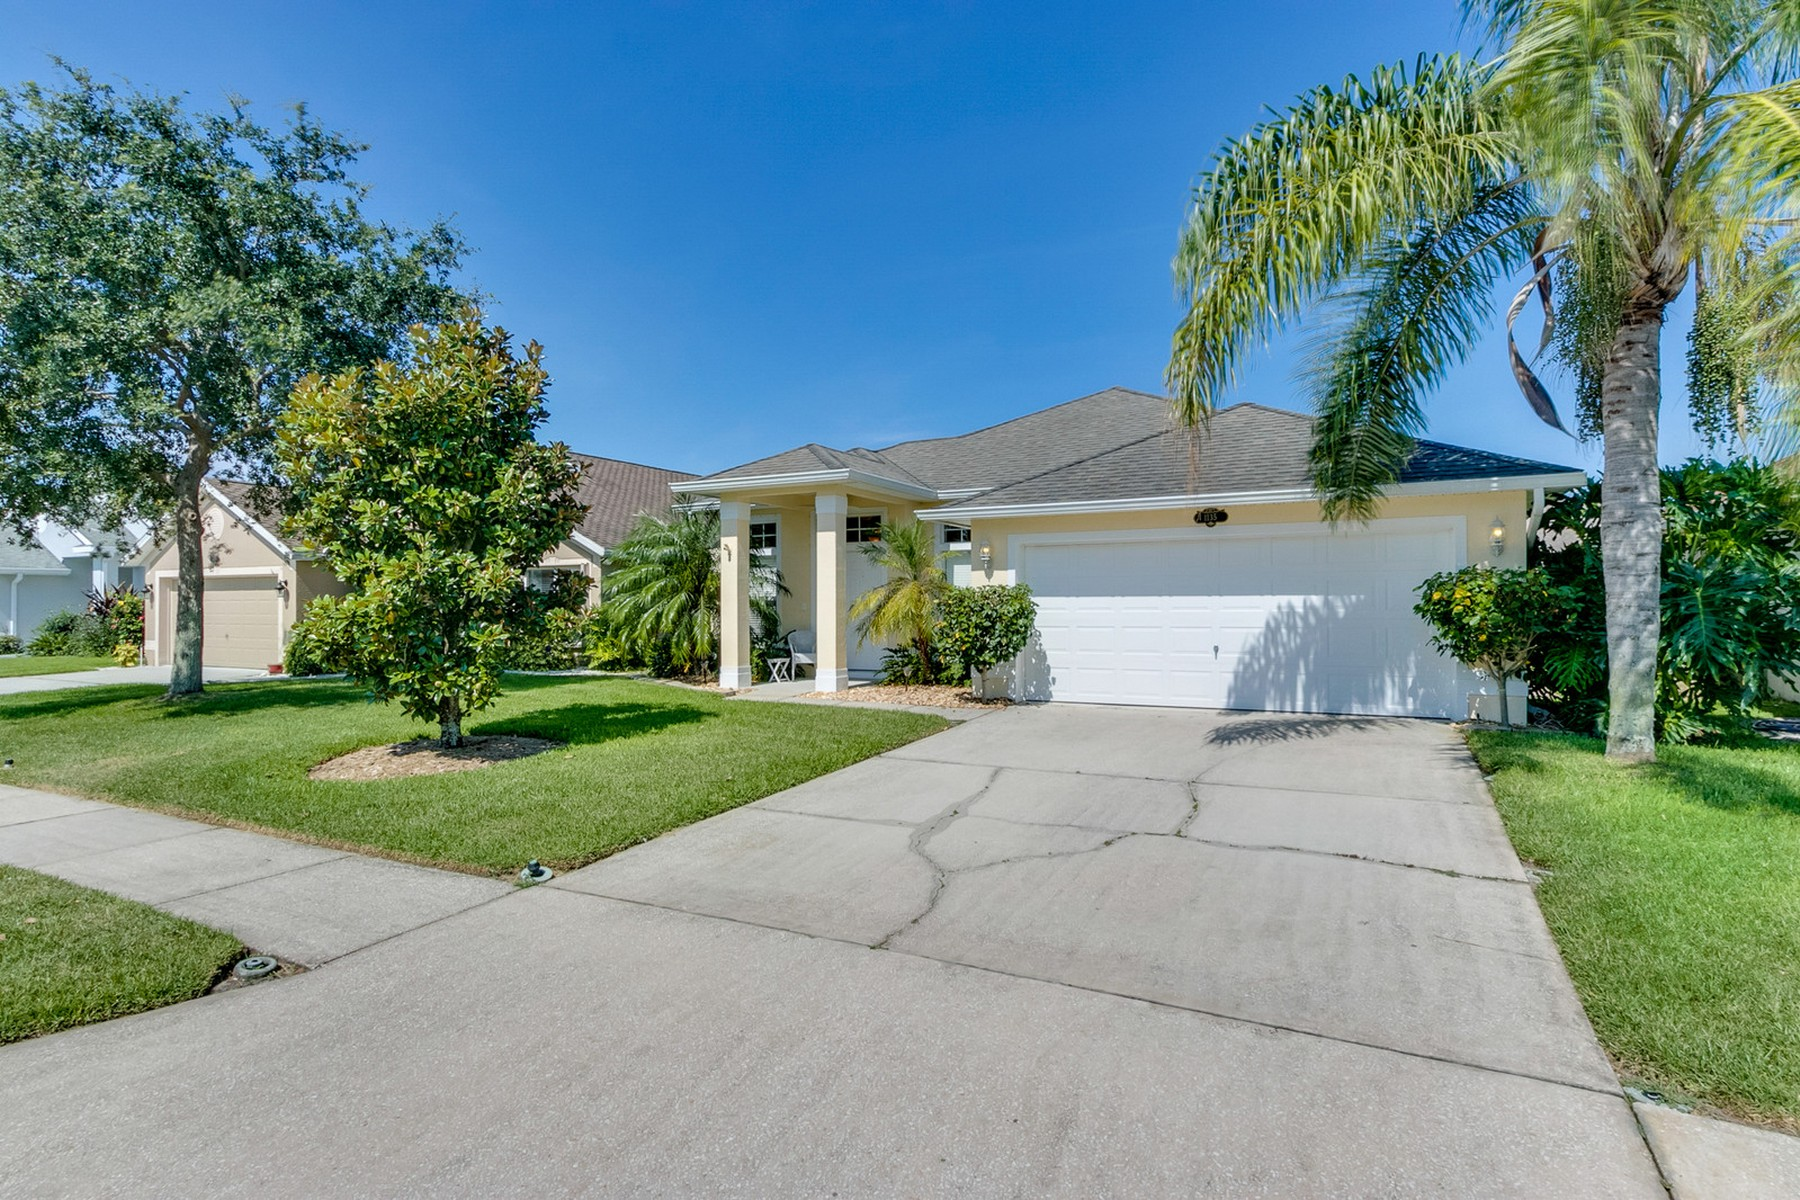 Meticulously Maintained Lakefront Home 1135 Sedgewood Circle West Melbourne, Florida 32904 Usa